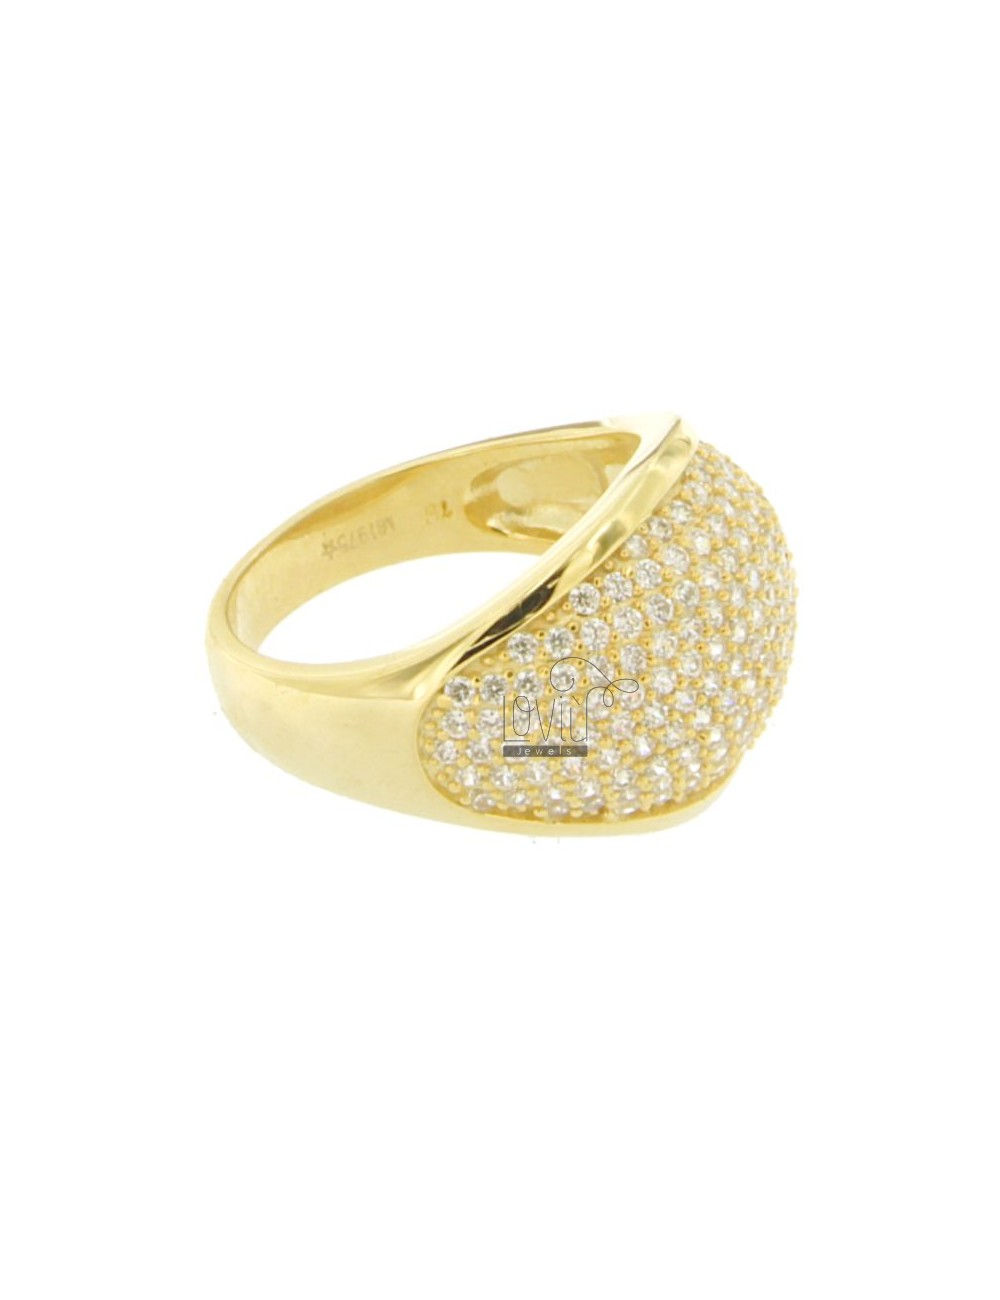 AG DOME RING IN GOLD PLATED 925 TIT AND ZIRCONIA SIZE 16